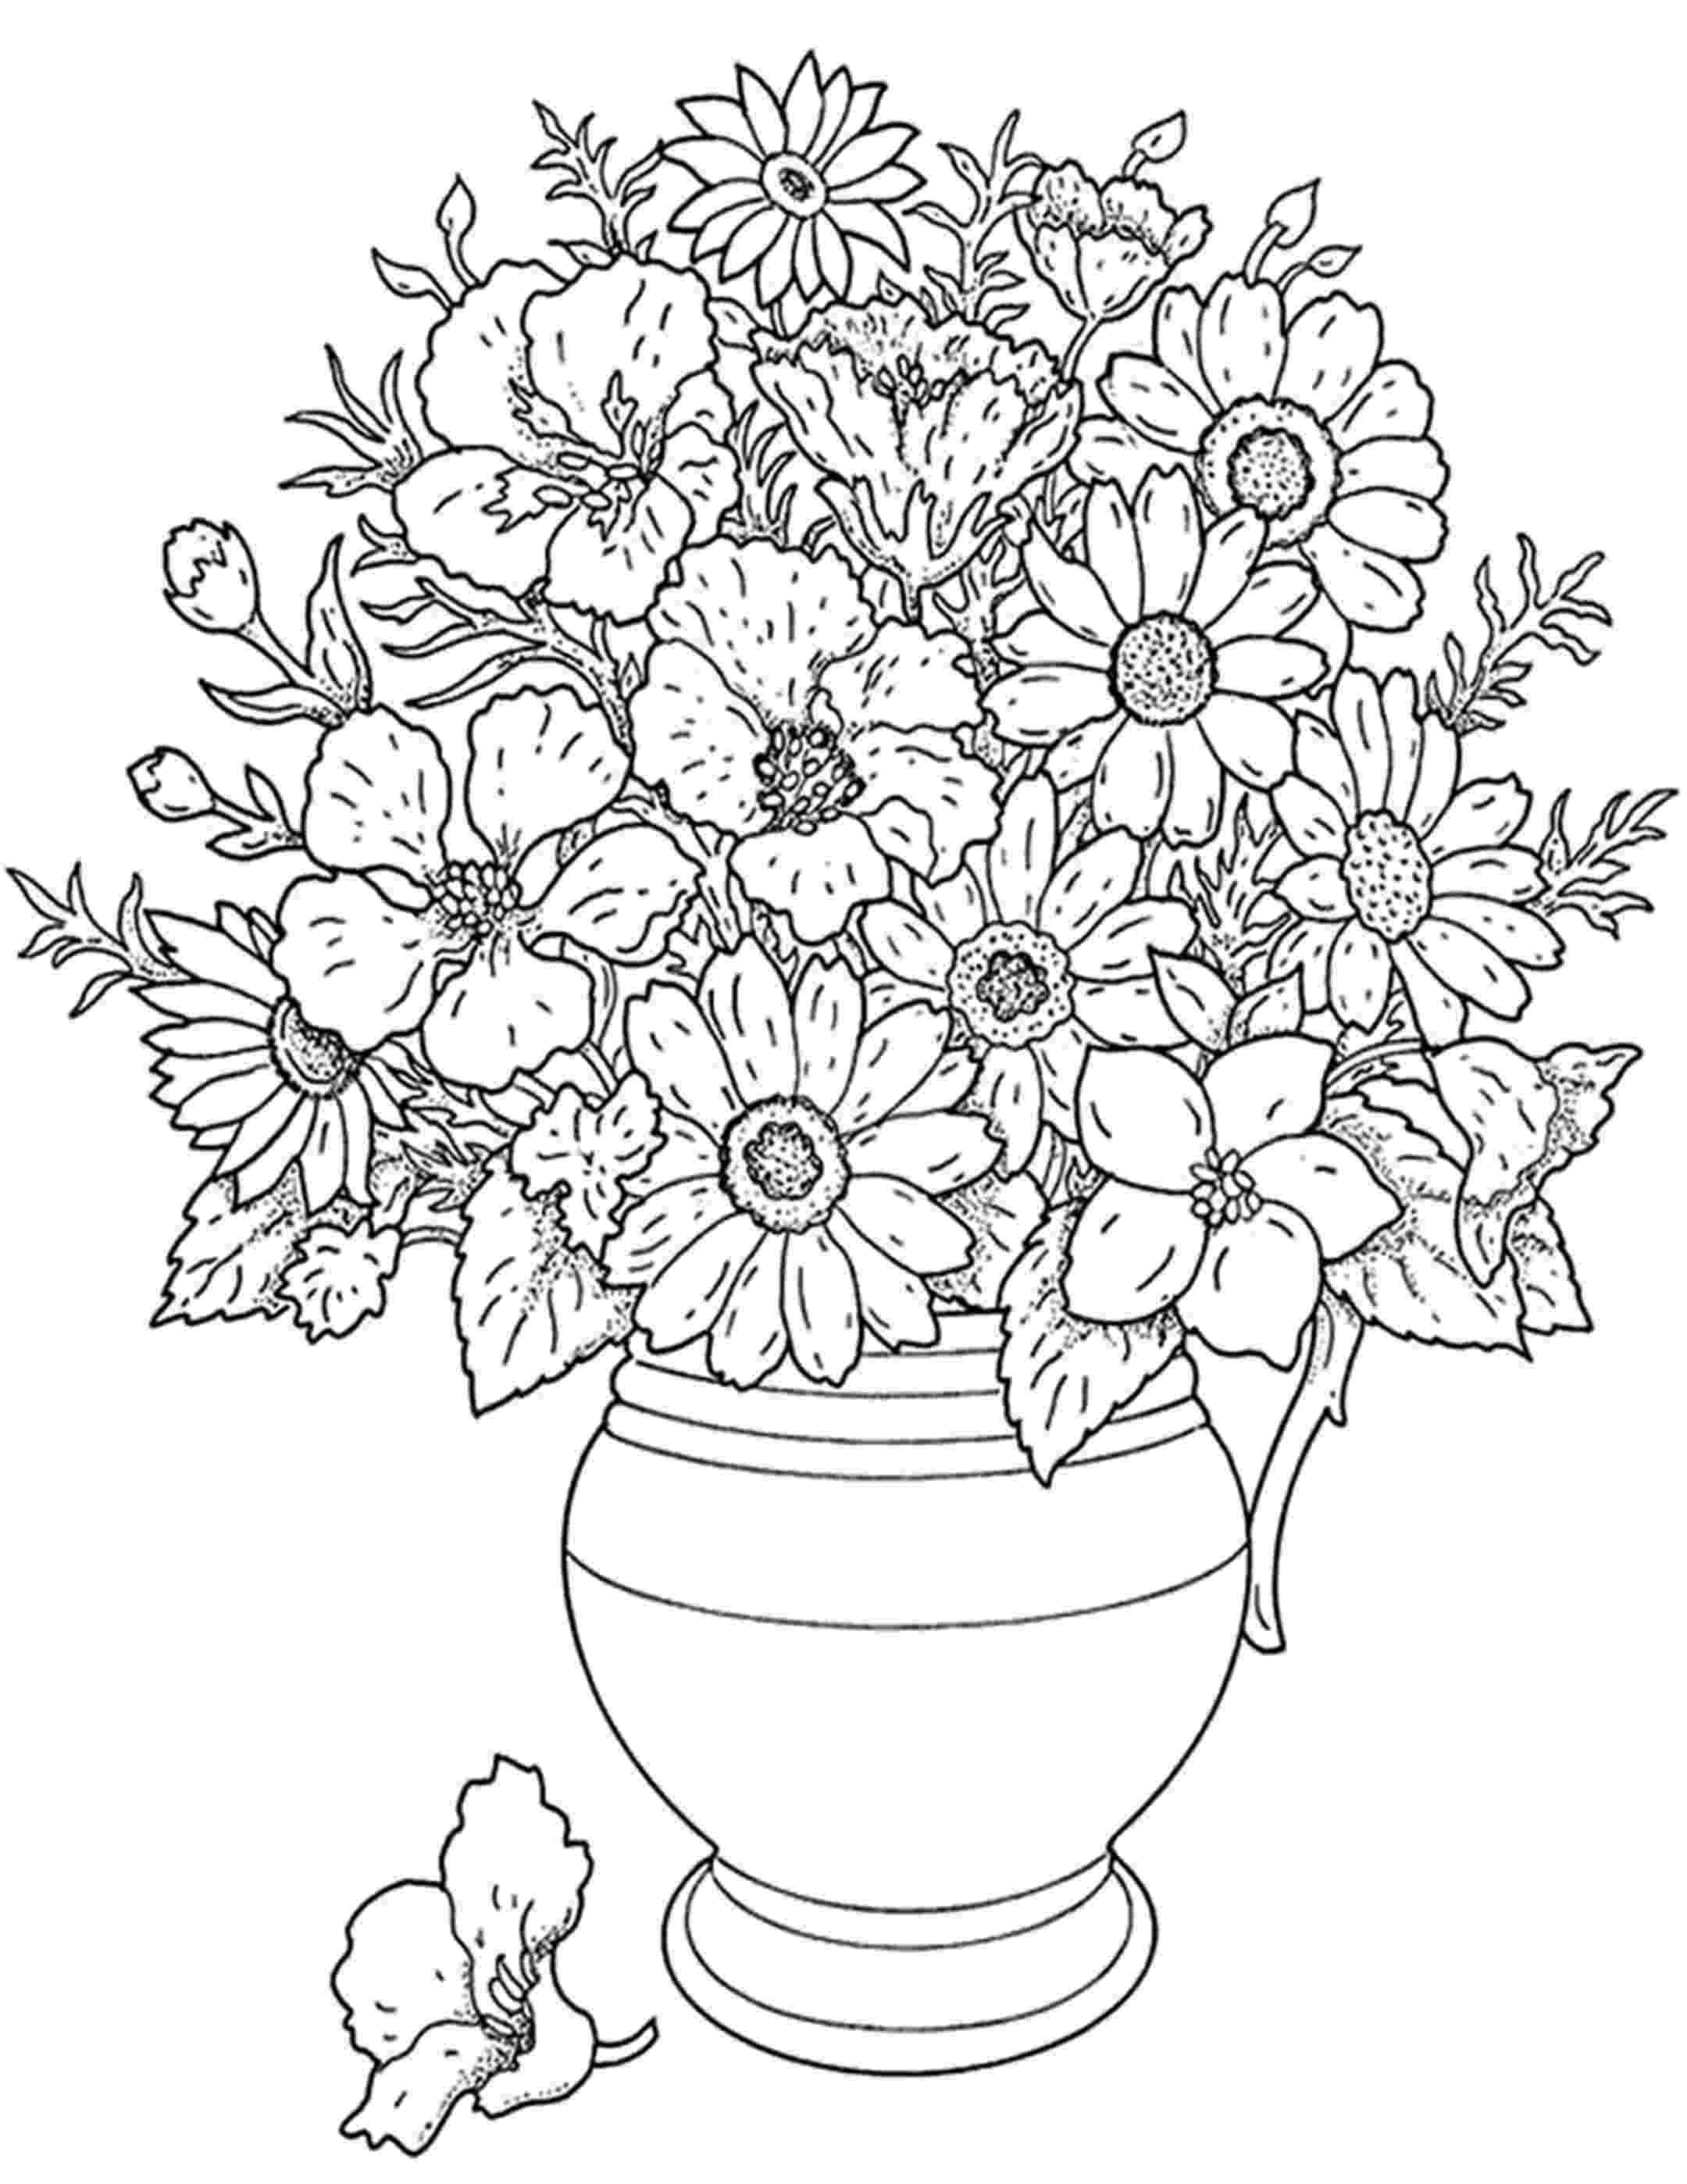 flower pictures to print and color free printable flower coloring pages for kids best pictures and print flower color to